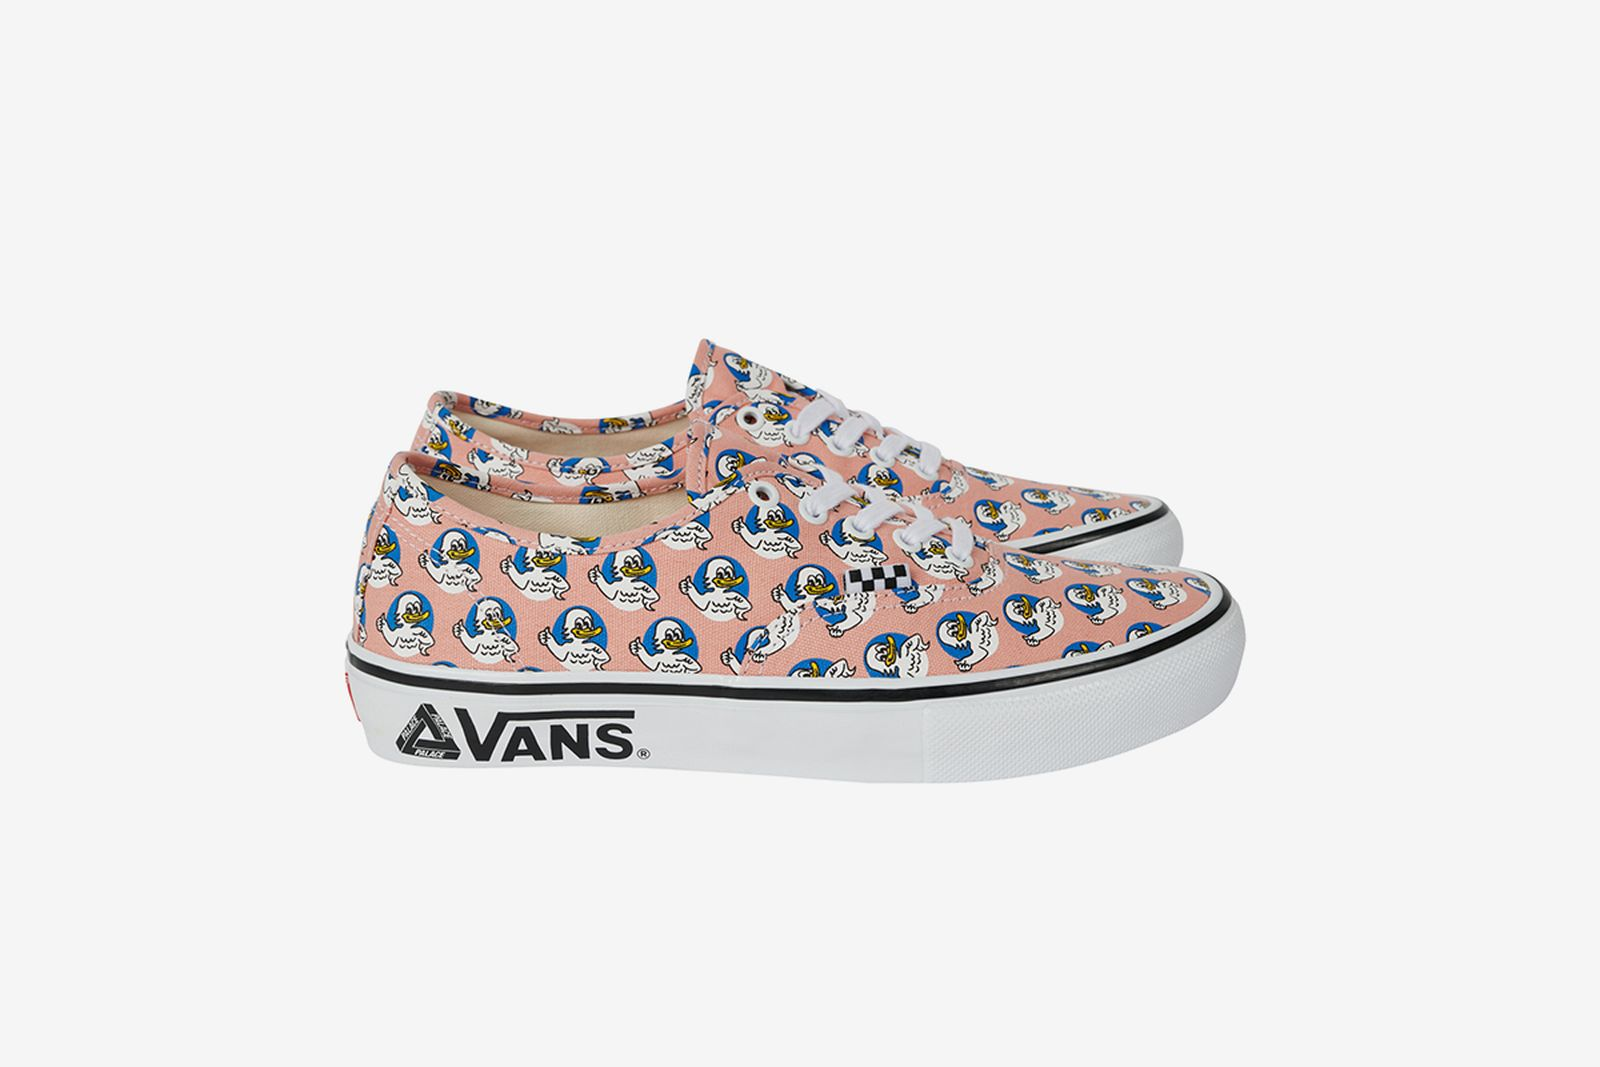 palace-vans-skate-authentic-release-date-price-1-12